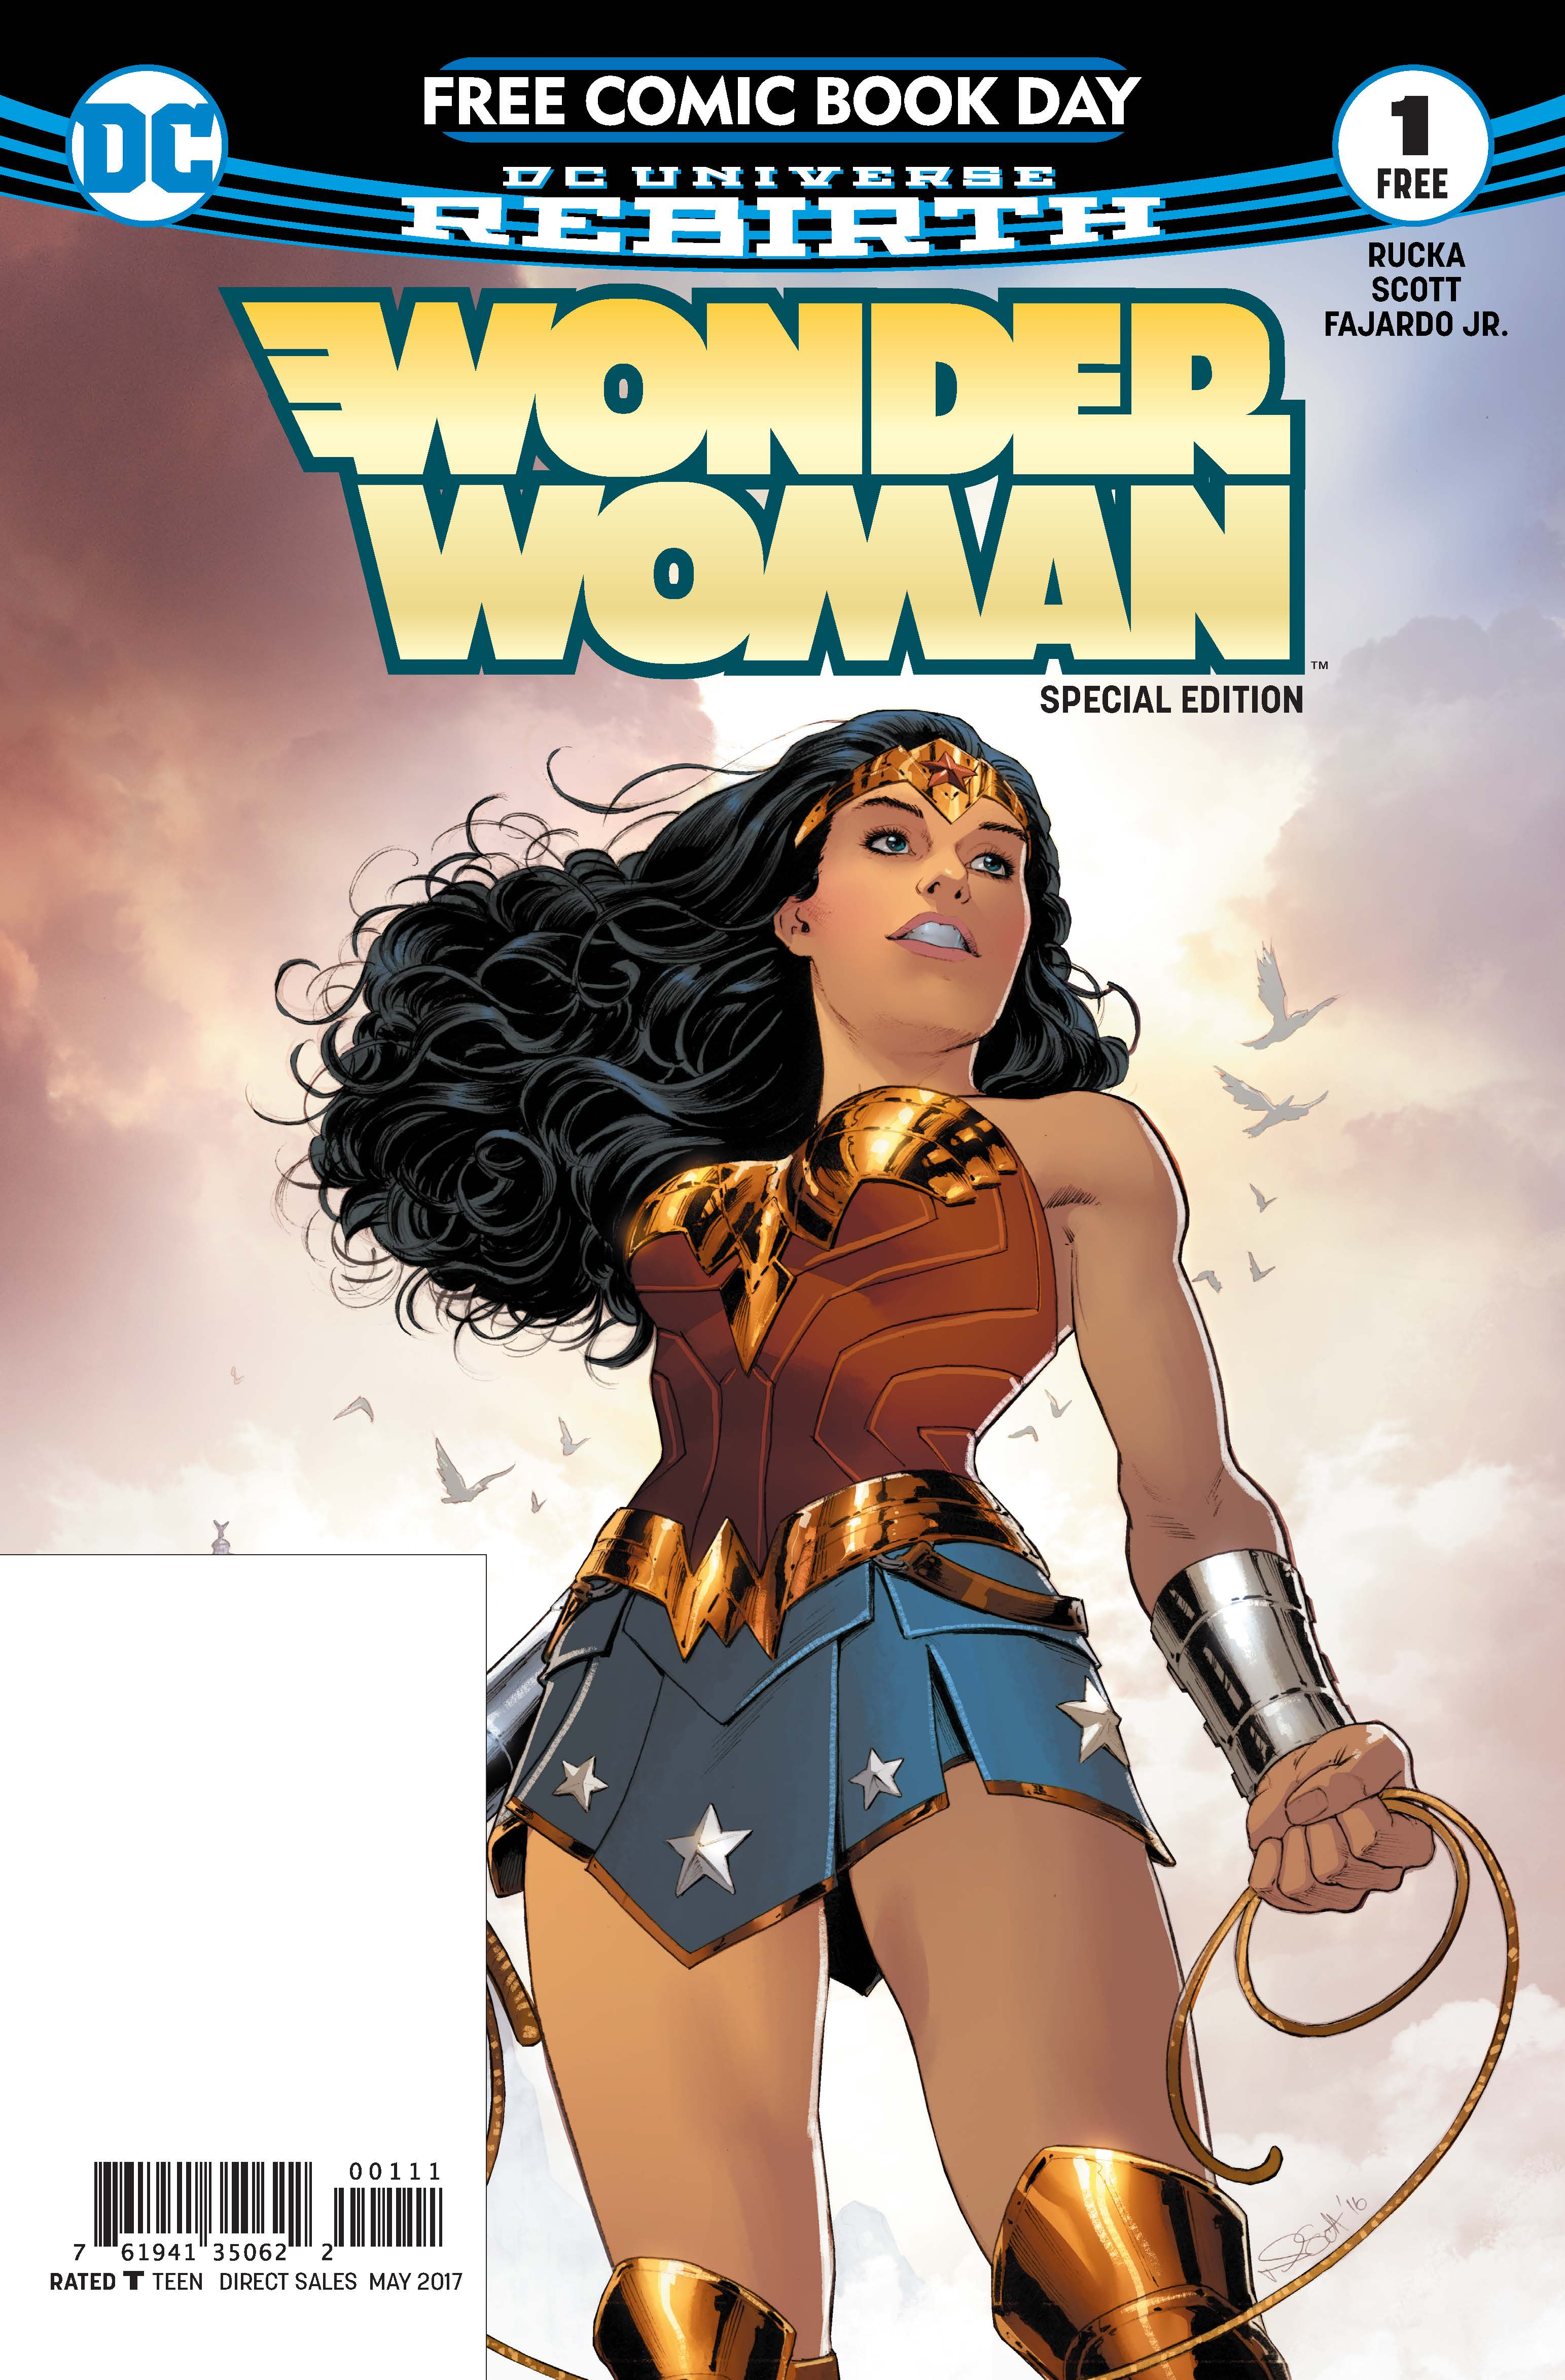 WONDER WOMAN FCBD SPECIAL EDITION #1 (written by New York Times Best Selling writer Greg Rucka and illustrated by Nicola Scott)